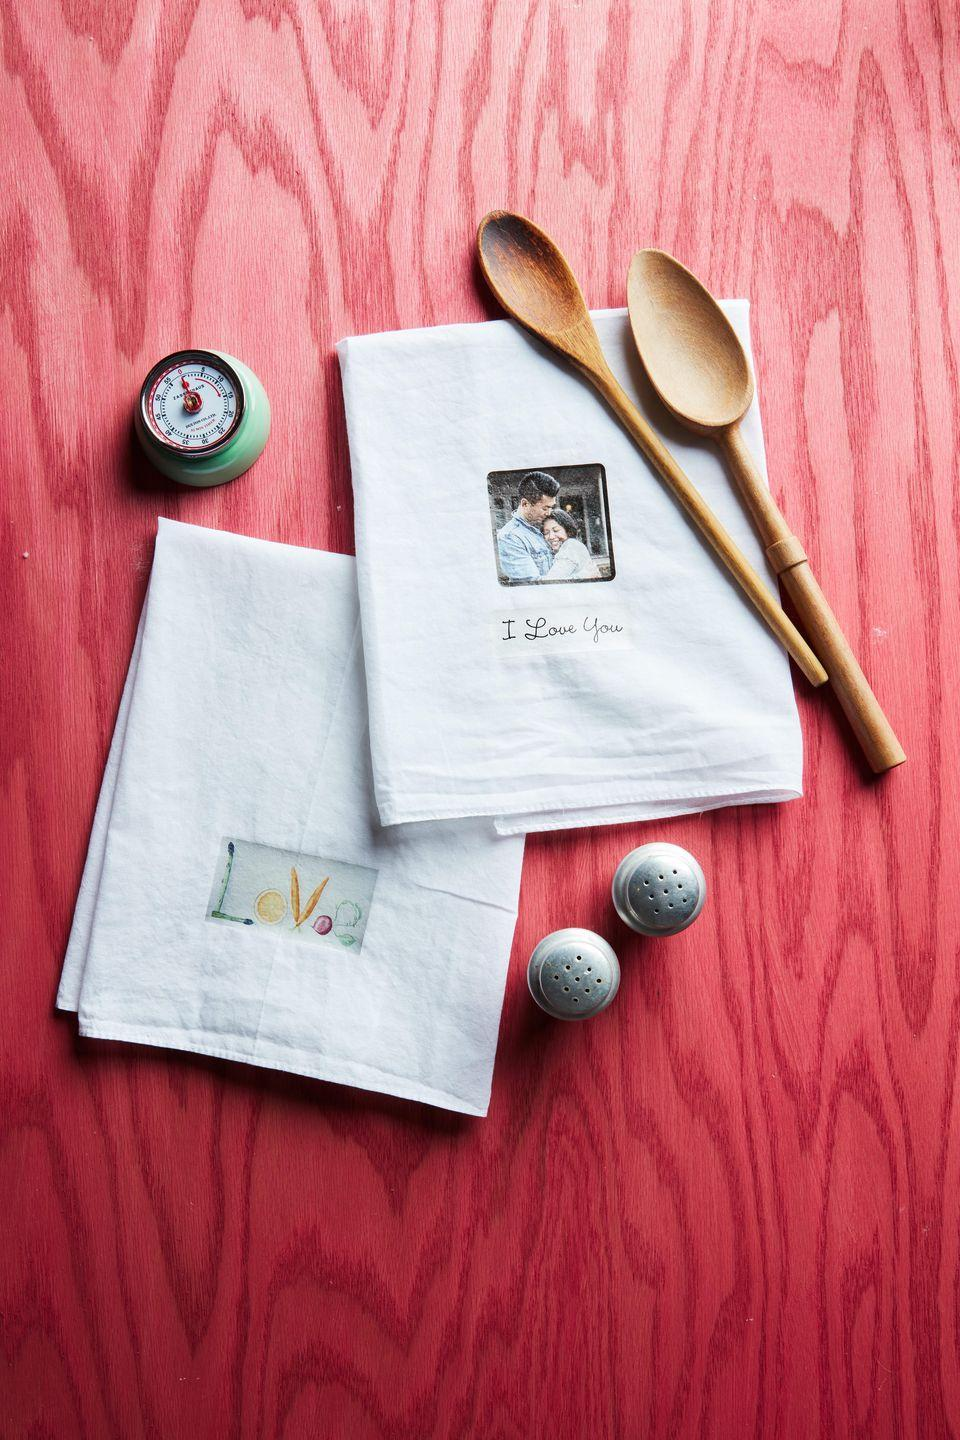 """<p>Beautiful and utilitarian, these custom dishtowels will bring love and joy to the most used room in the house—the kitchen. </p><p><strong>To make:</strong> On your computer, design imagery including photographs, if desired. Print on iron-on transfer paper. Cut out around imagery and iron on cotton dishtowels per manufacturer's directions.</p><p><a class=""""link rapid-noclick-resp"""" href=""""https://www.amazon.com/TransOurDream-Tru-Transfer-EasyToUse-Transfer-Printable/dp/B08CN3N48H/ref=sr_1_2_sspa?tag=syn-yahoo-20&ascsubtag=%5Bartid%7C10050.g.2971%5Bsrc%7Cyahoo-us"""" rel=""""nofollow noopener"""" target=""""_blank"""" data-ylk=""""slk:SHOP IRON-ON PAPER"""">SHOP IRON-ON PAPER</a></p>"""